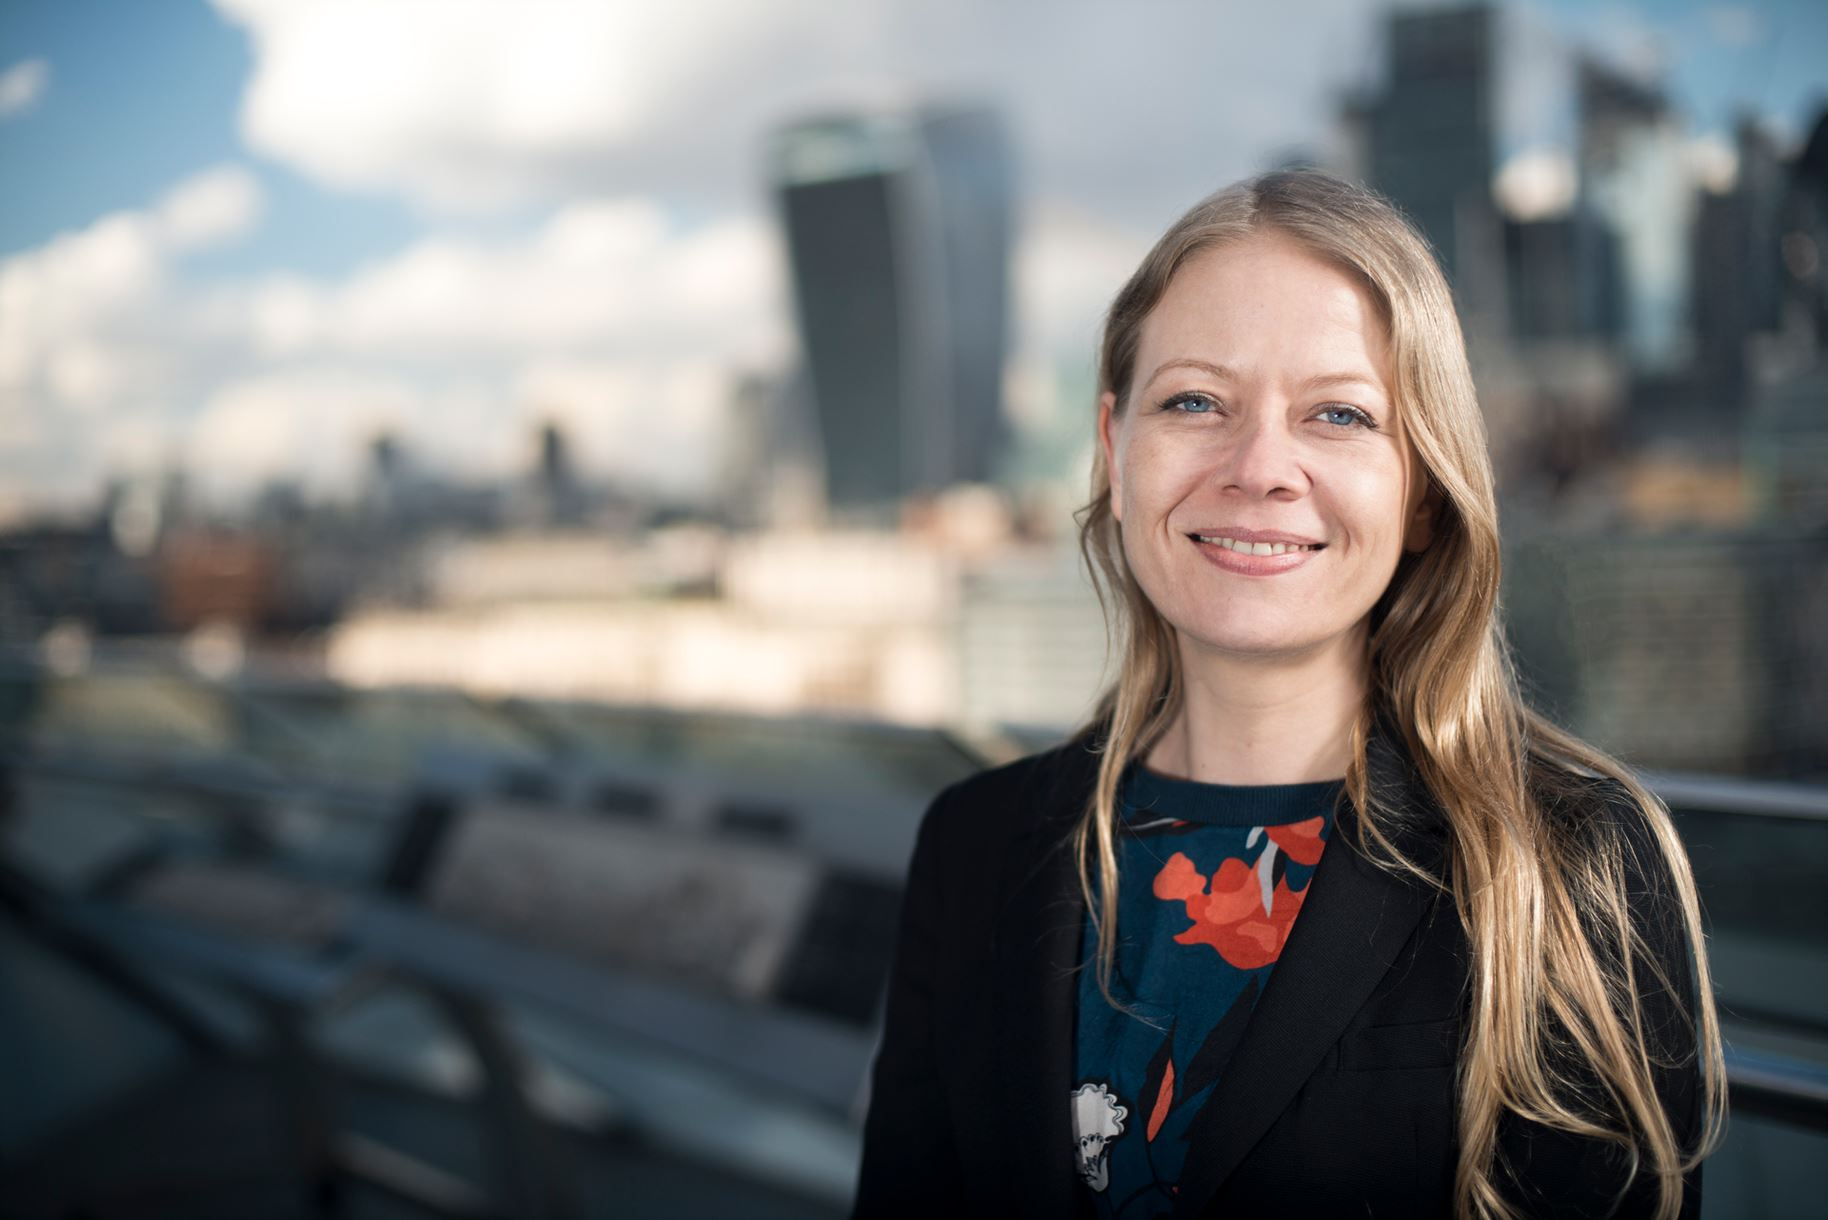 London Mayor candidate Sian Berry pledges to 'gold plate' London's green  belt if elected – South London News